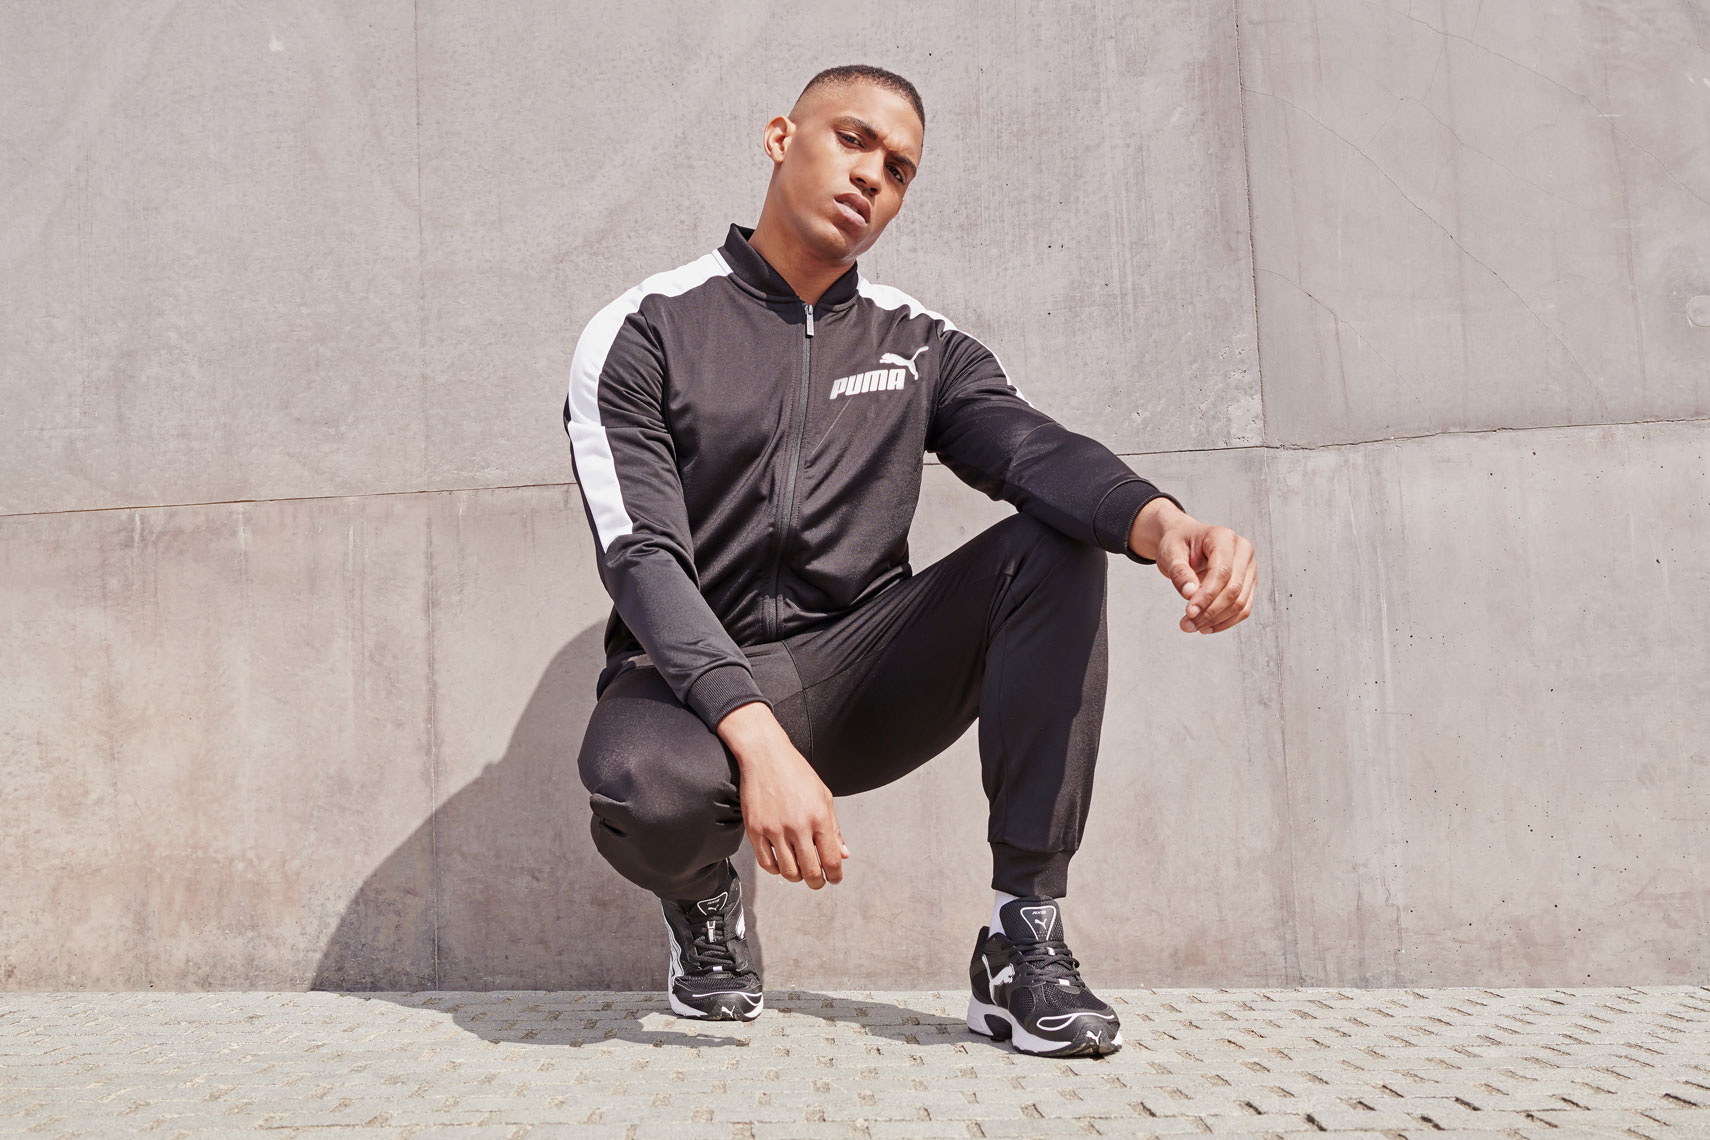 issie-gibbons-fashion-stylist-menswear-puma-sports-direct-campaign